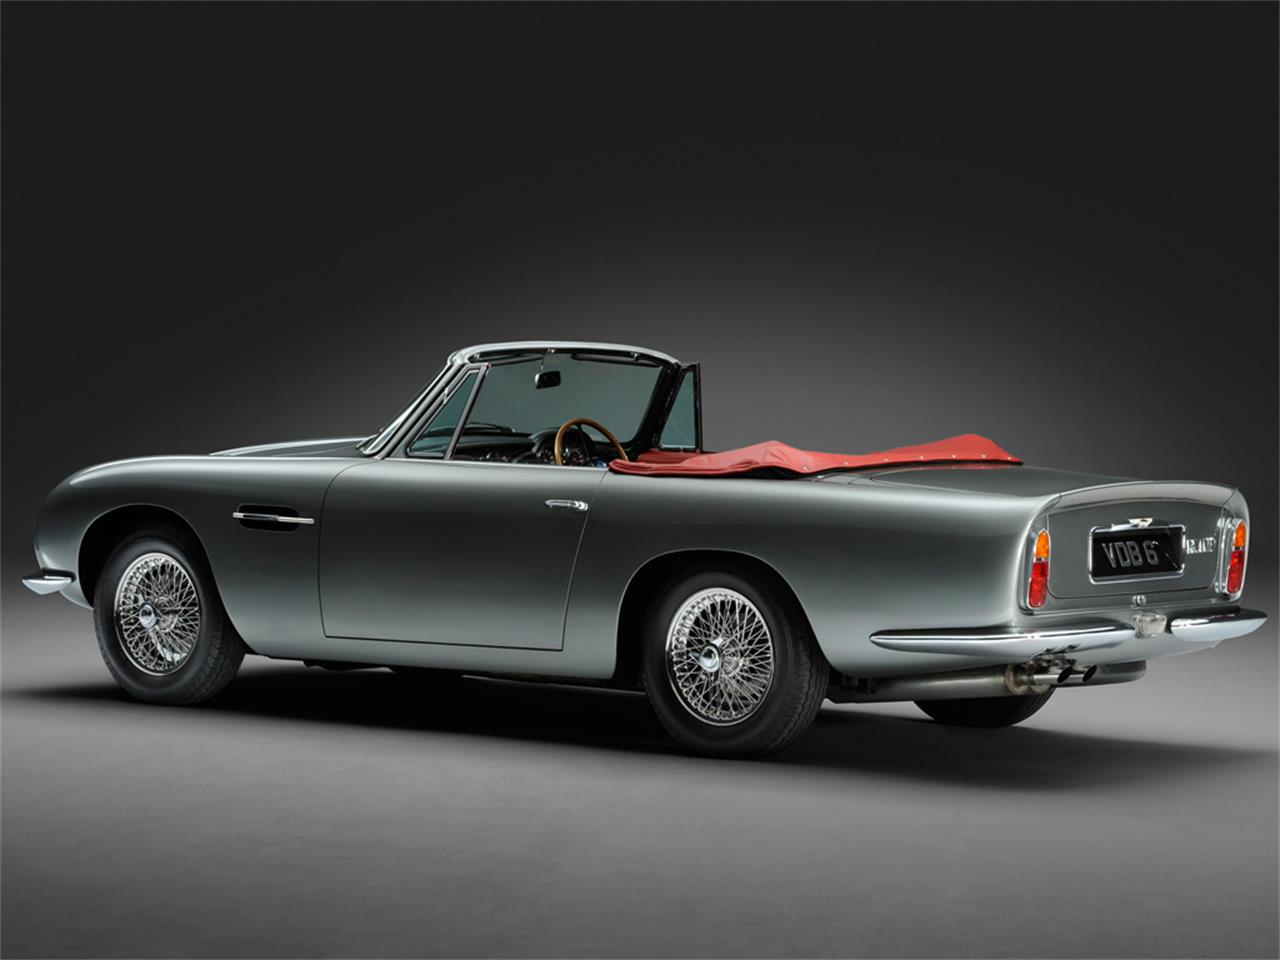 Large Picture of Classic '67 Aston Martin DB6 MKI Vantage Volante Auction Vehicle - IVCB